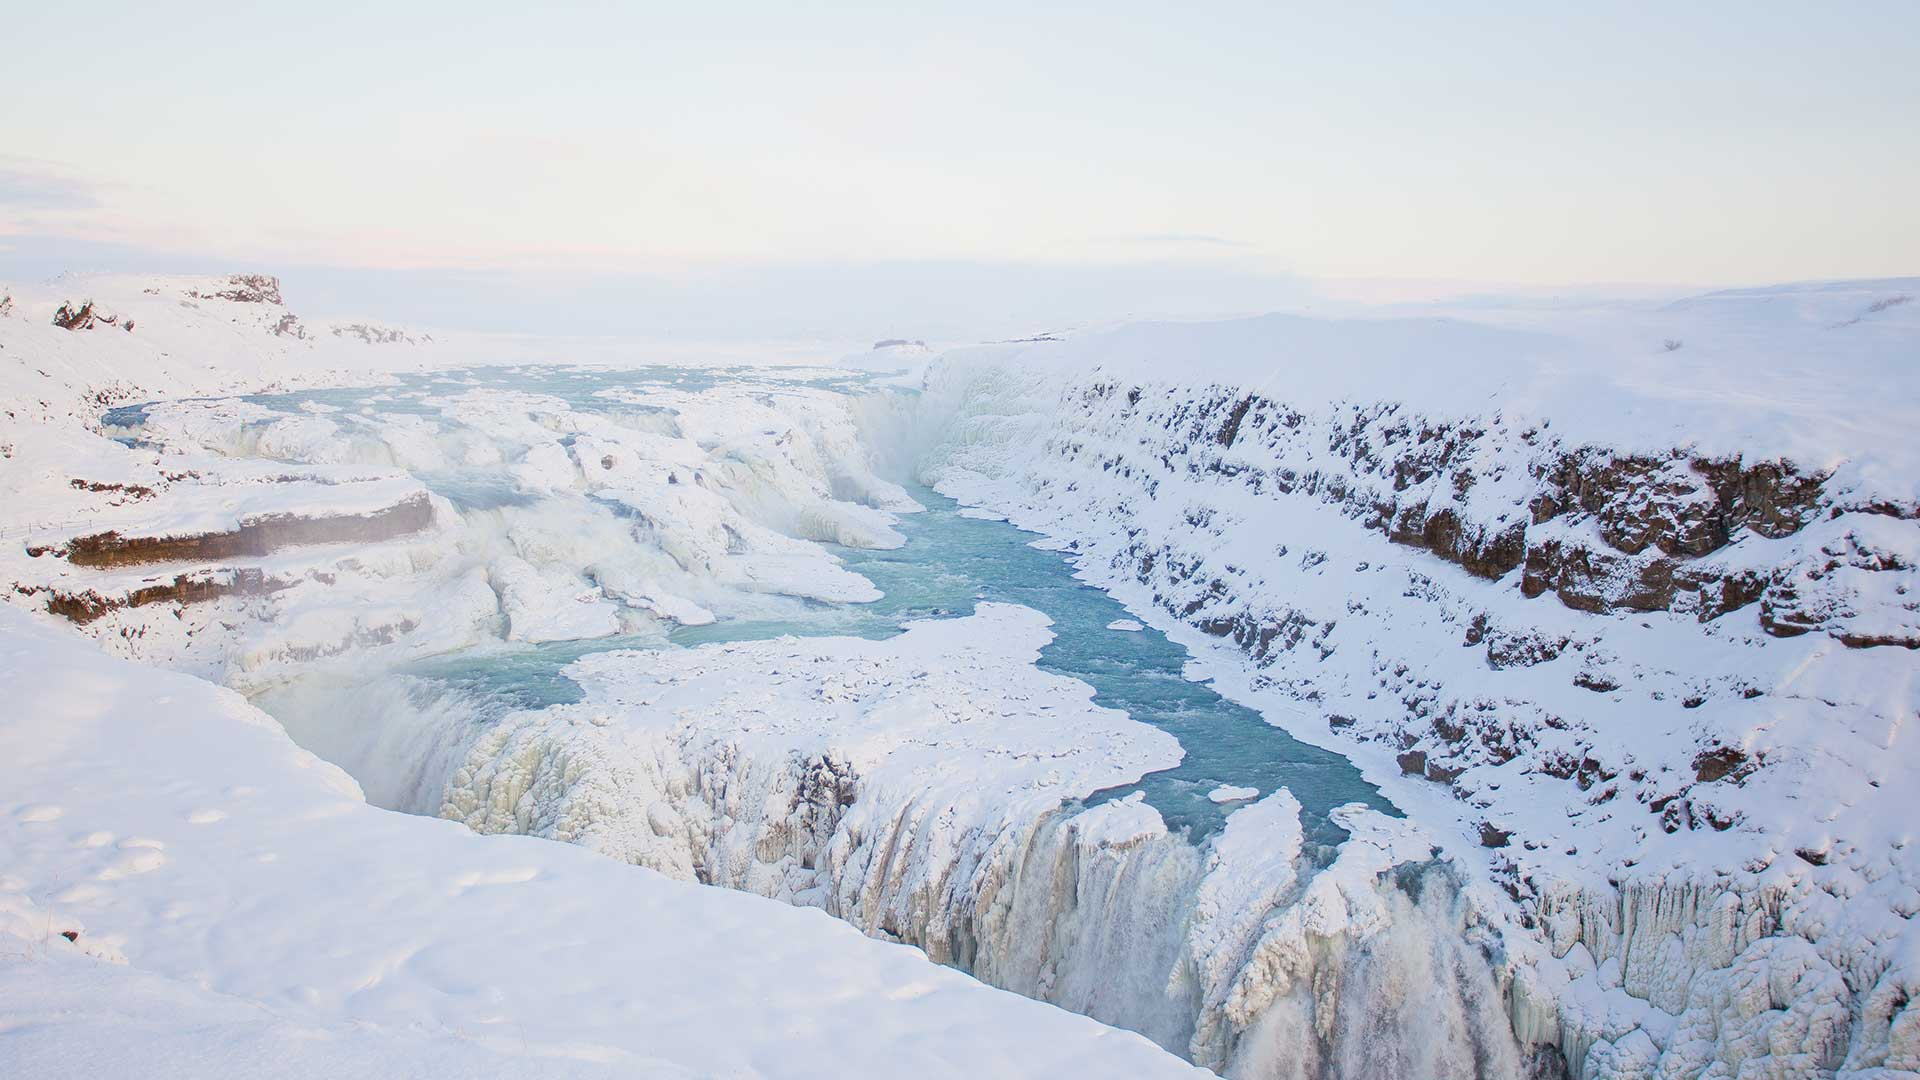 Iceland Winter World - 6 Days 5 Nights - Nordic Visitor